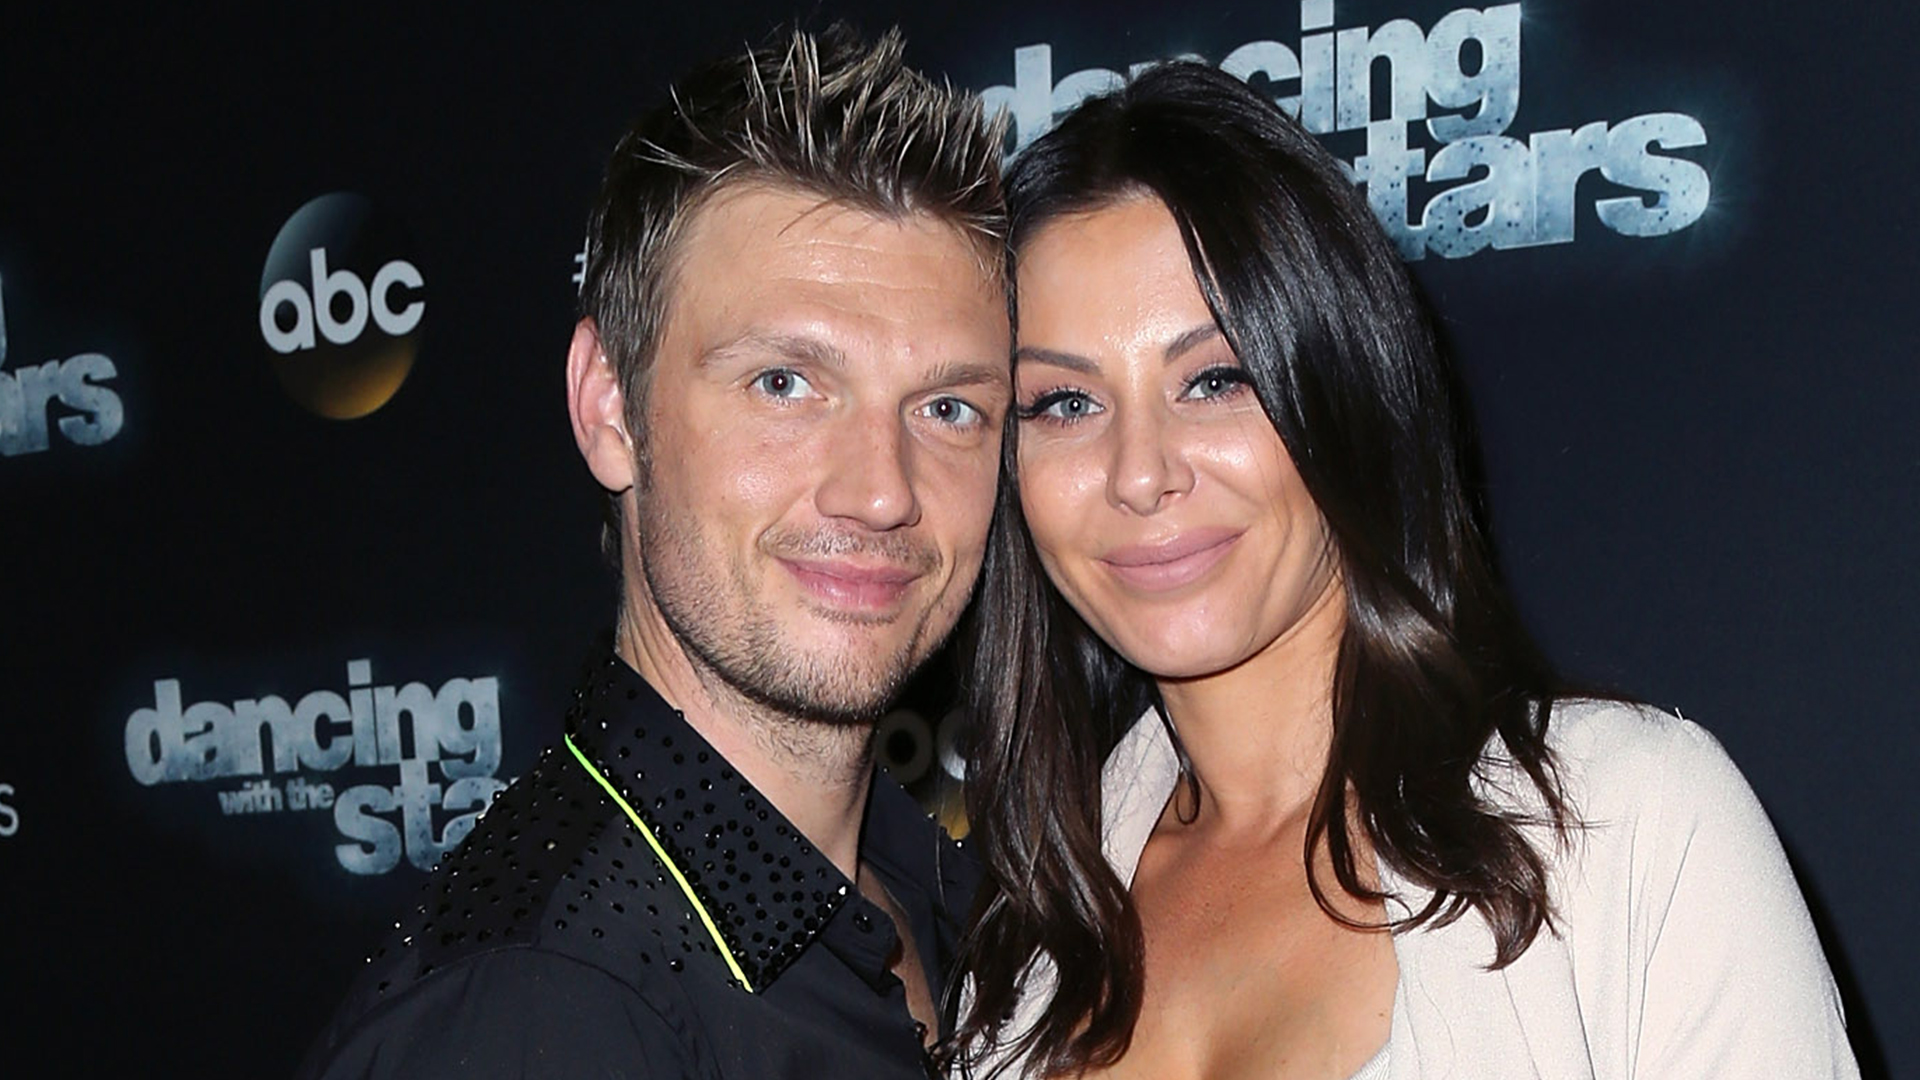 Nick Carter And Wife Lauren Kitt Welcome Baby No. 2 After Suffering Miscarriage